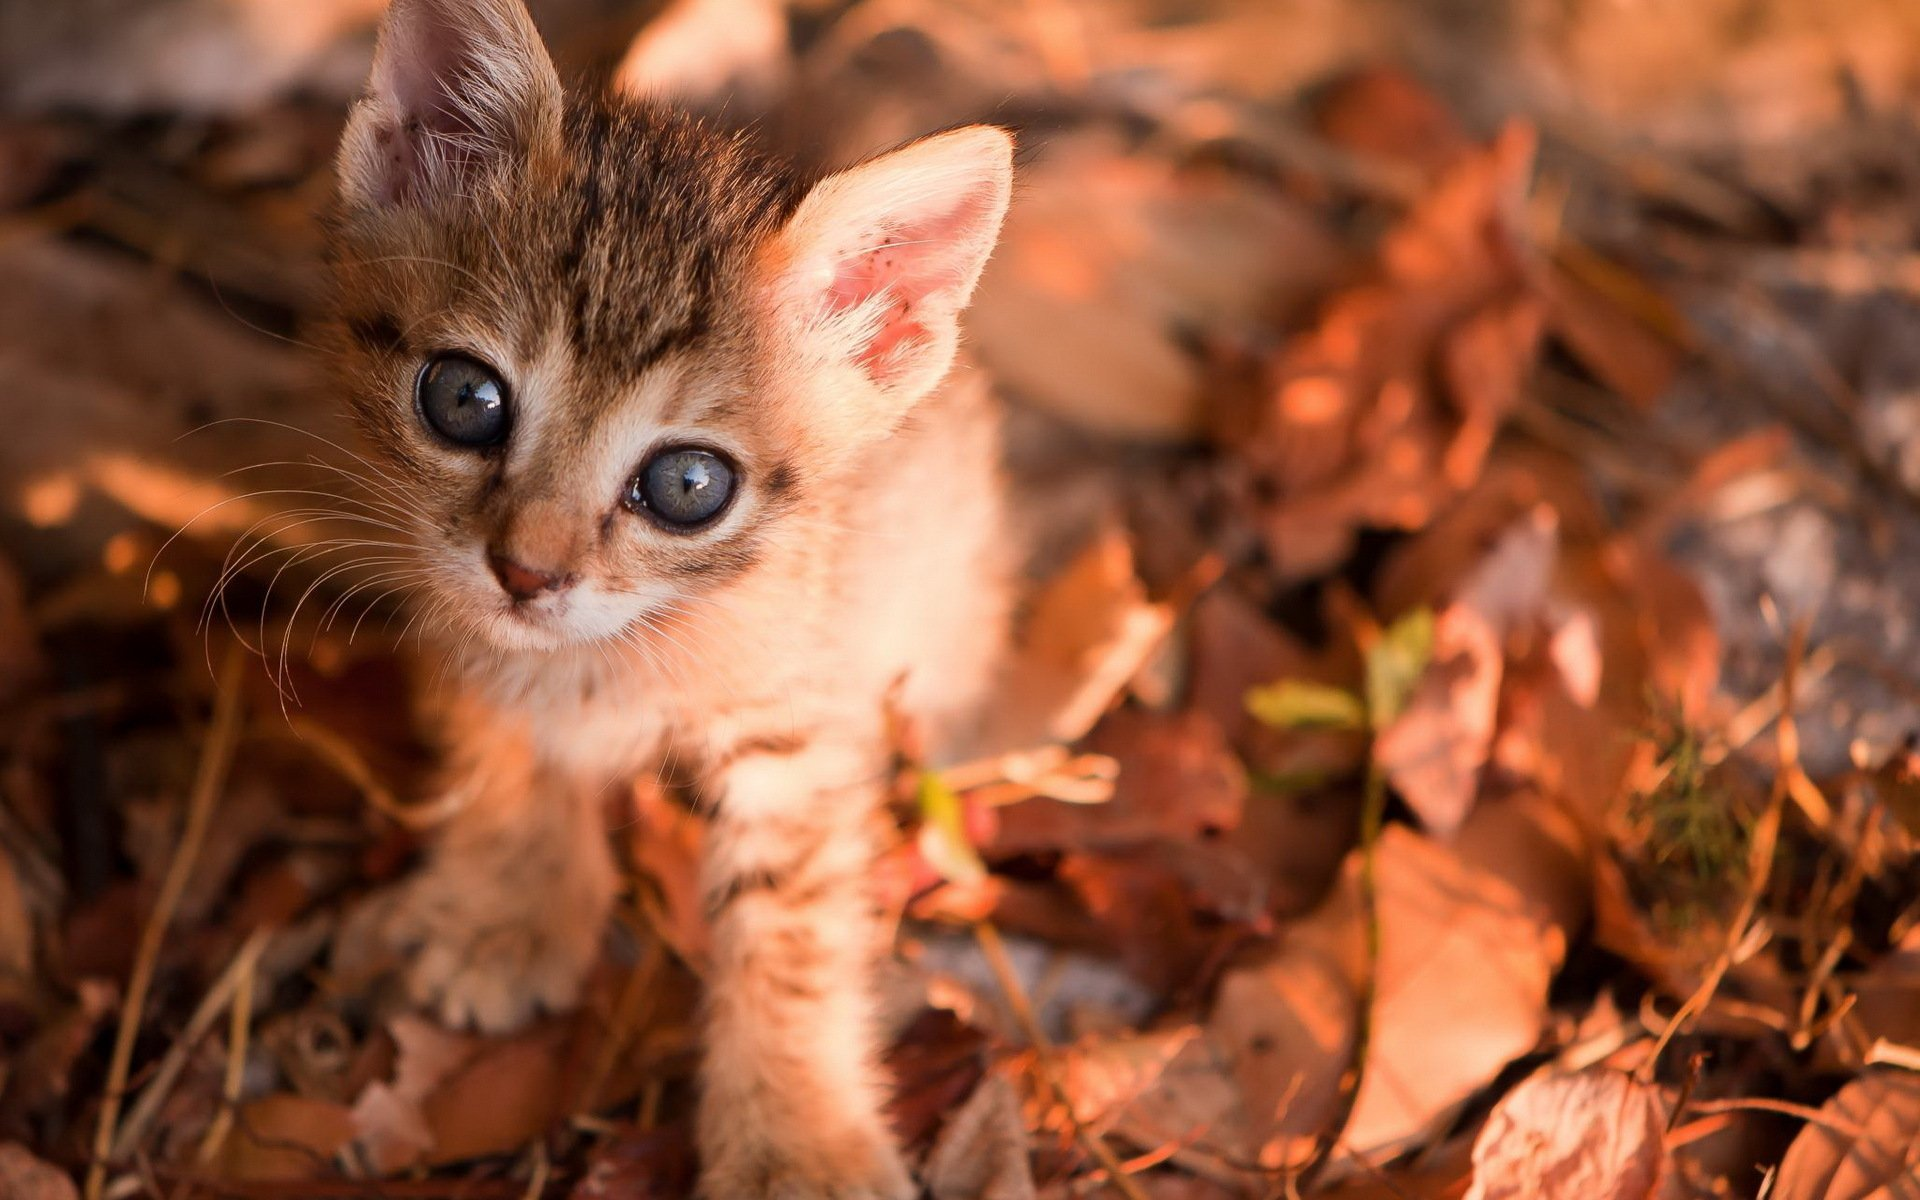 face eyes cute pov leaves autumn fall whiskers wallpaper background 1920x1200